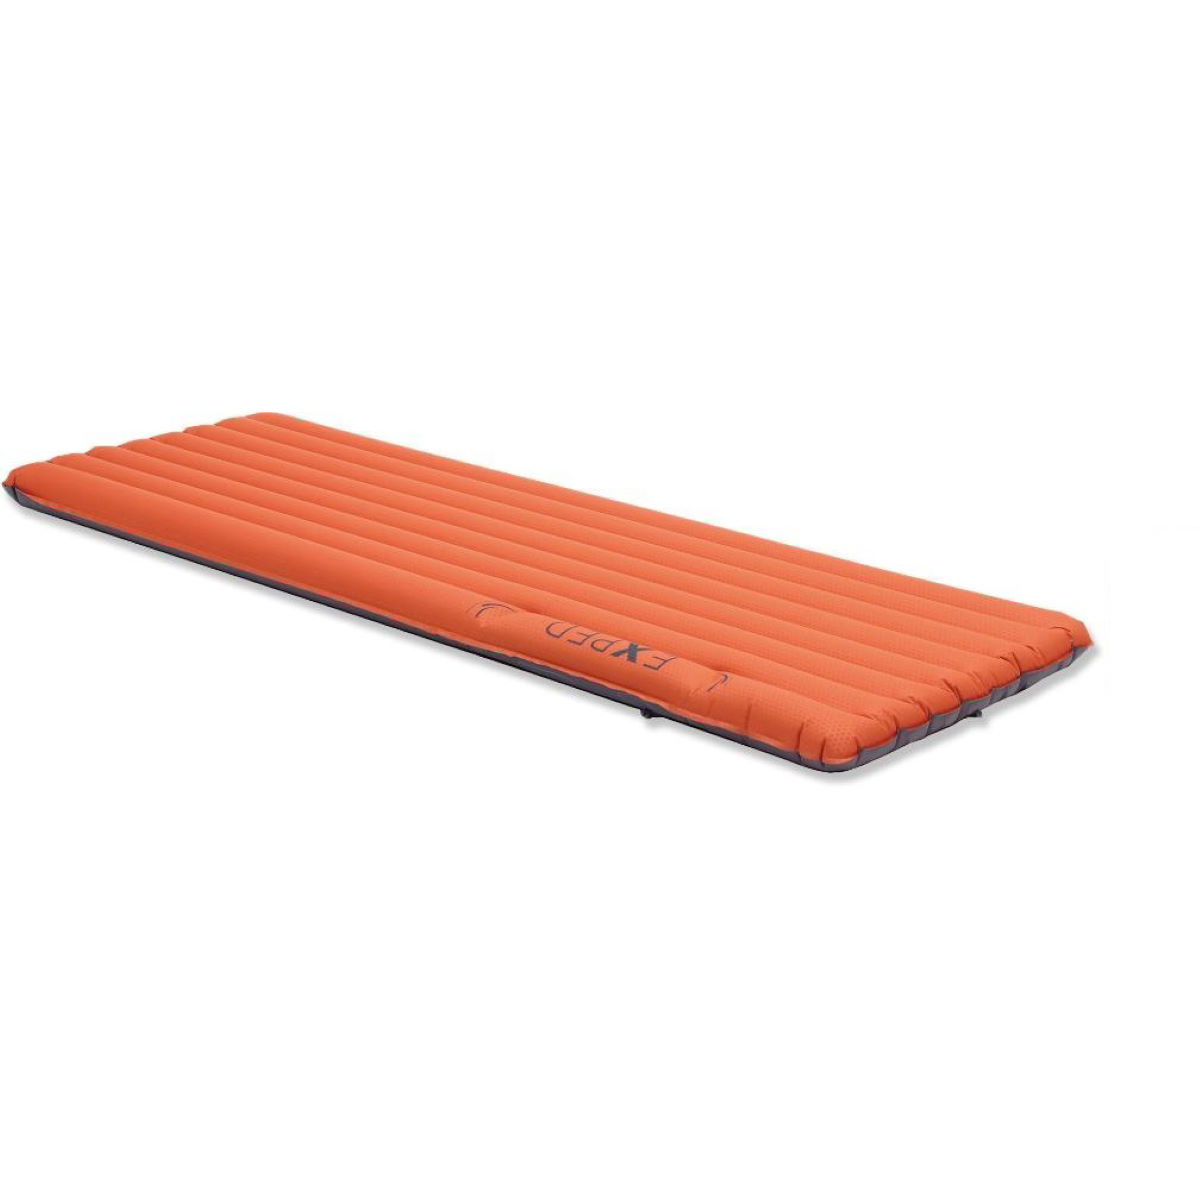 Exped Synmat 7 - Inflating Mat - Os Terracotta  Sleeping Mats